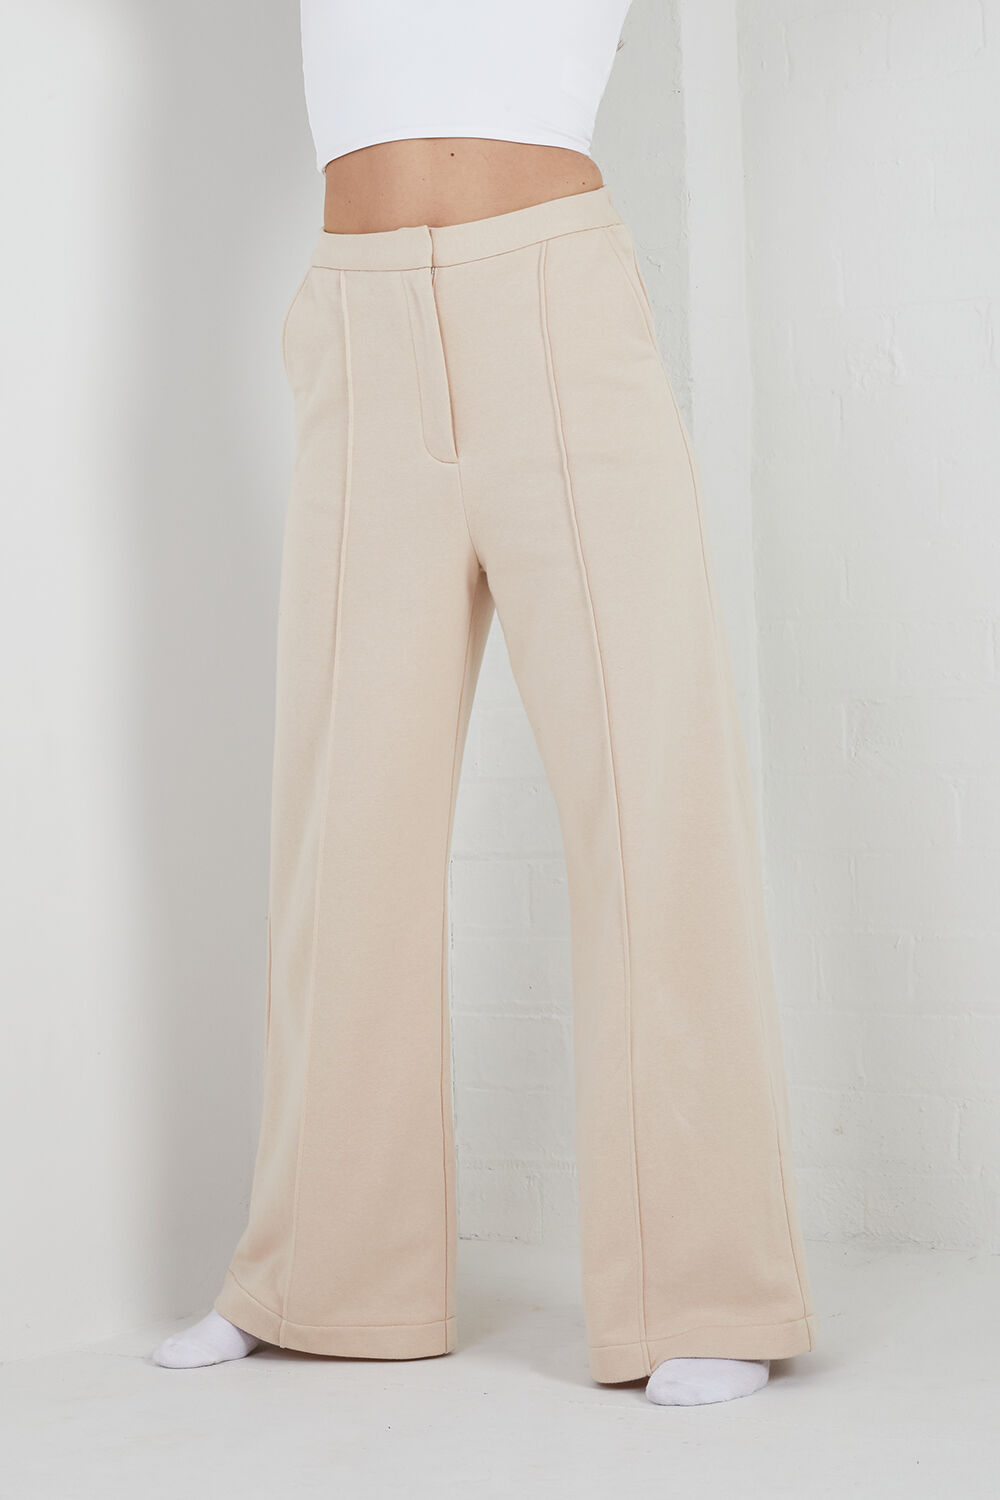 TAILORED TRACK PANT in colour TAPIOCA